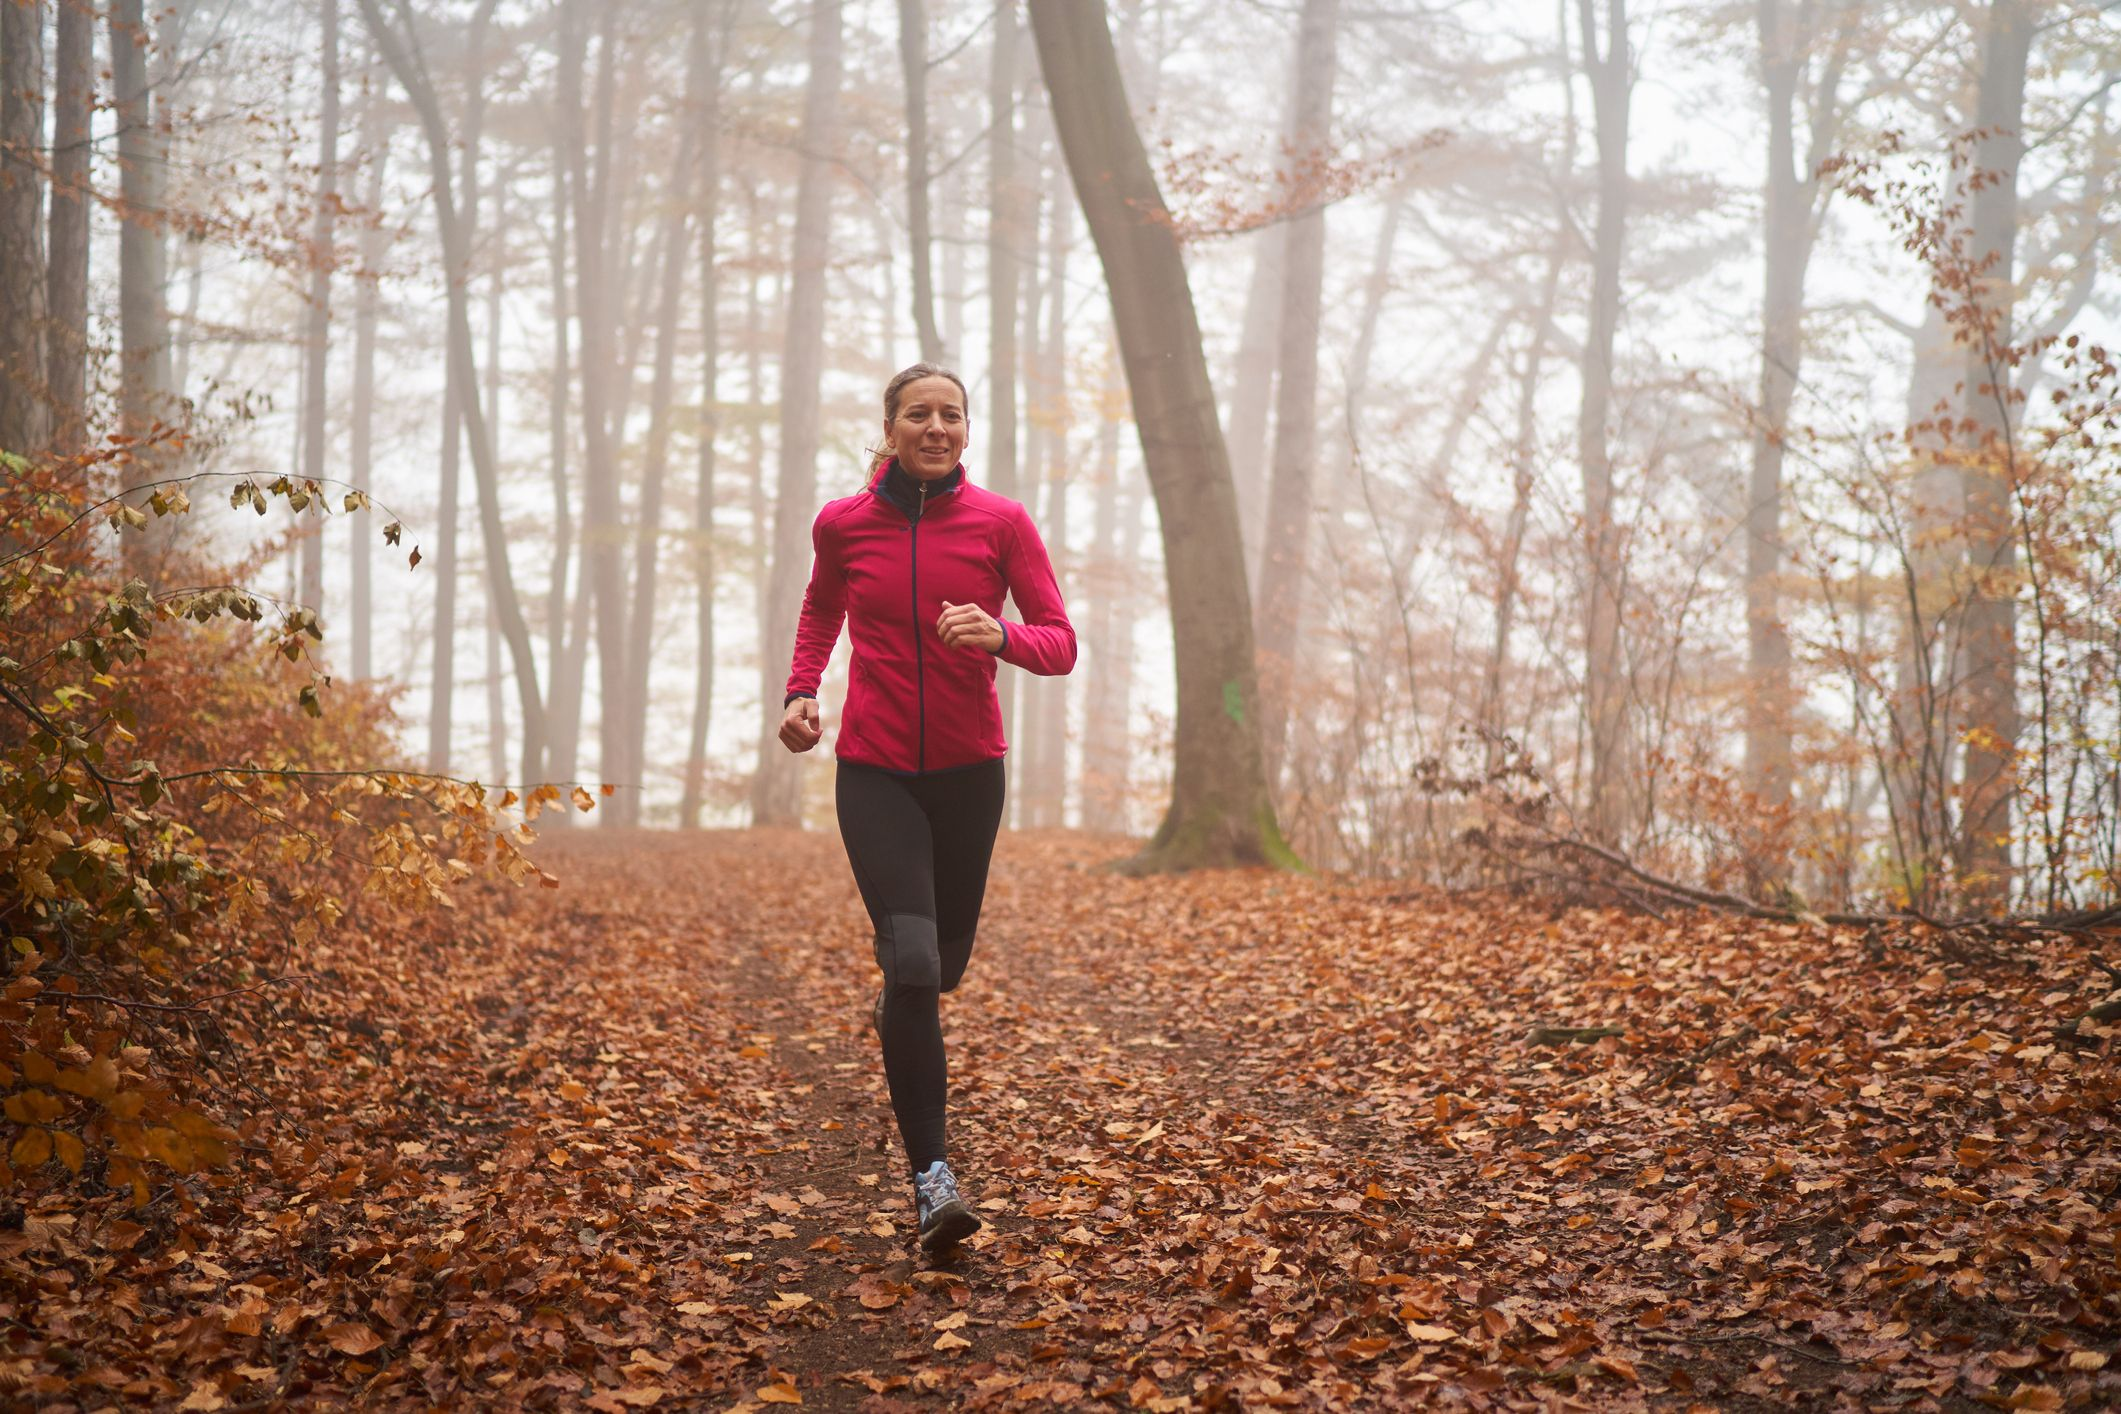 Regular outdoor exercise may reduce anxiety by around 60%